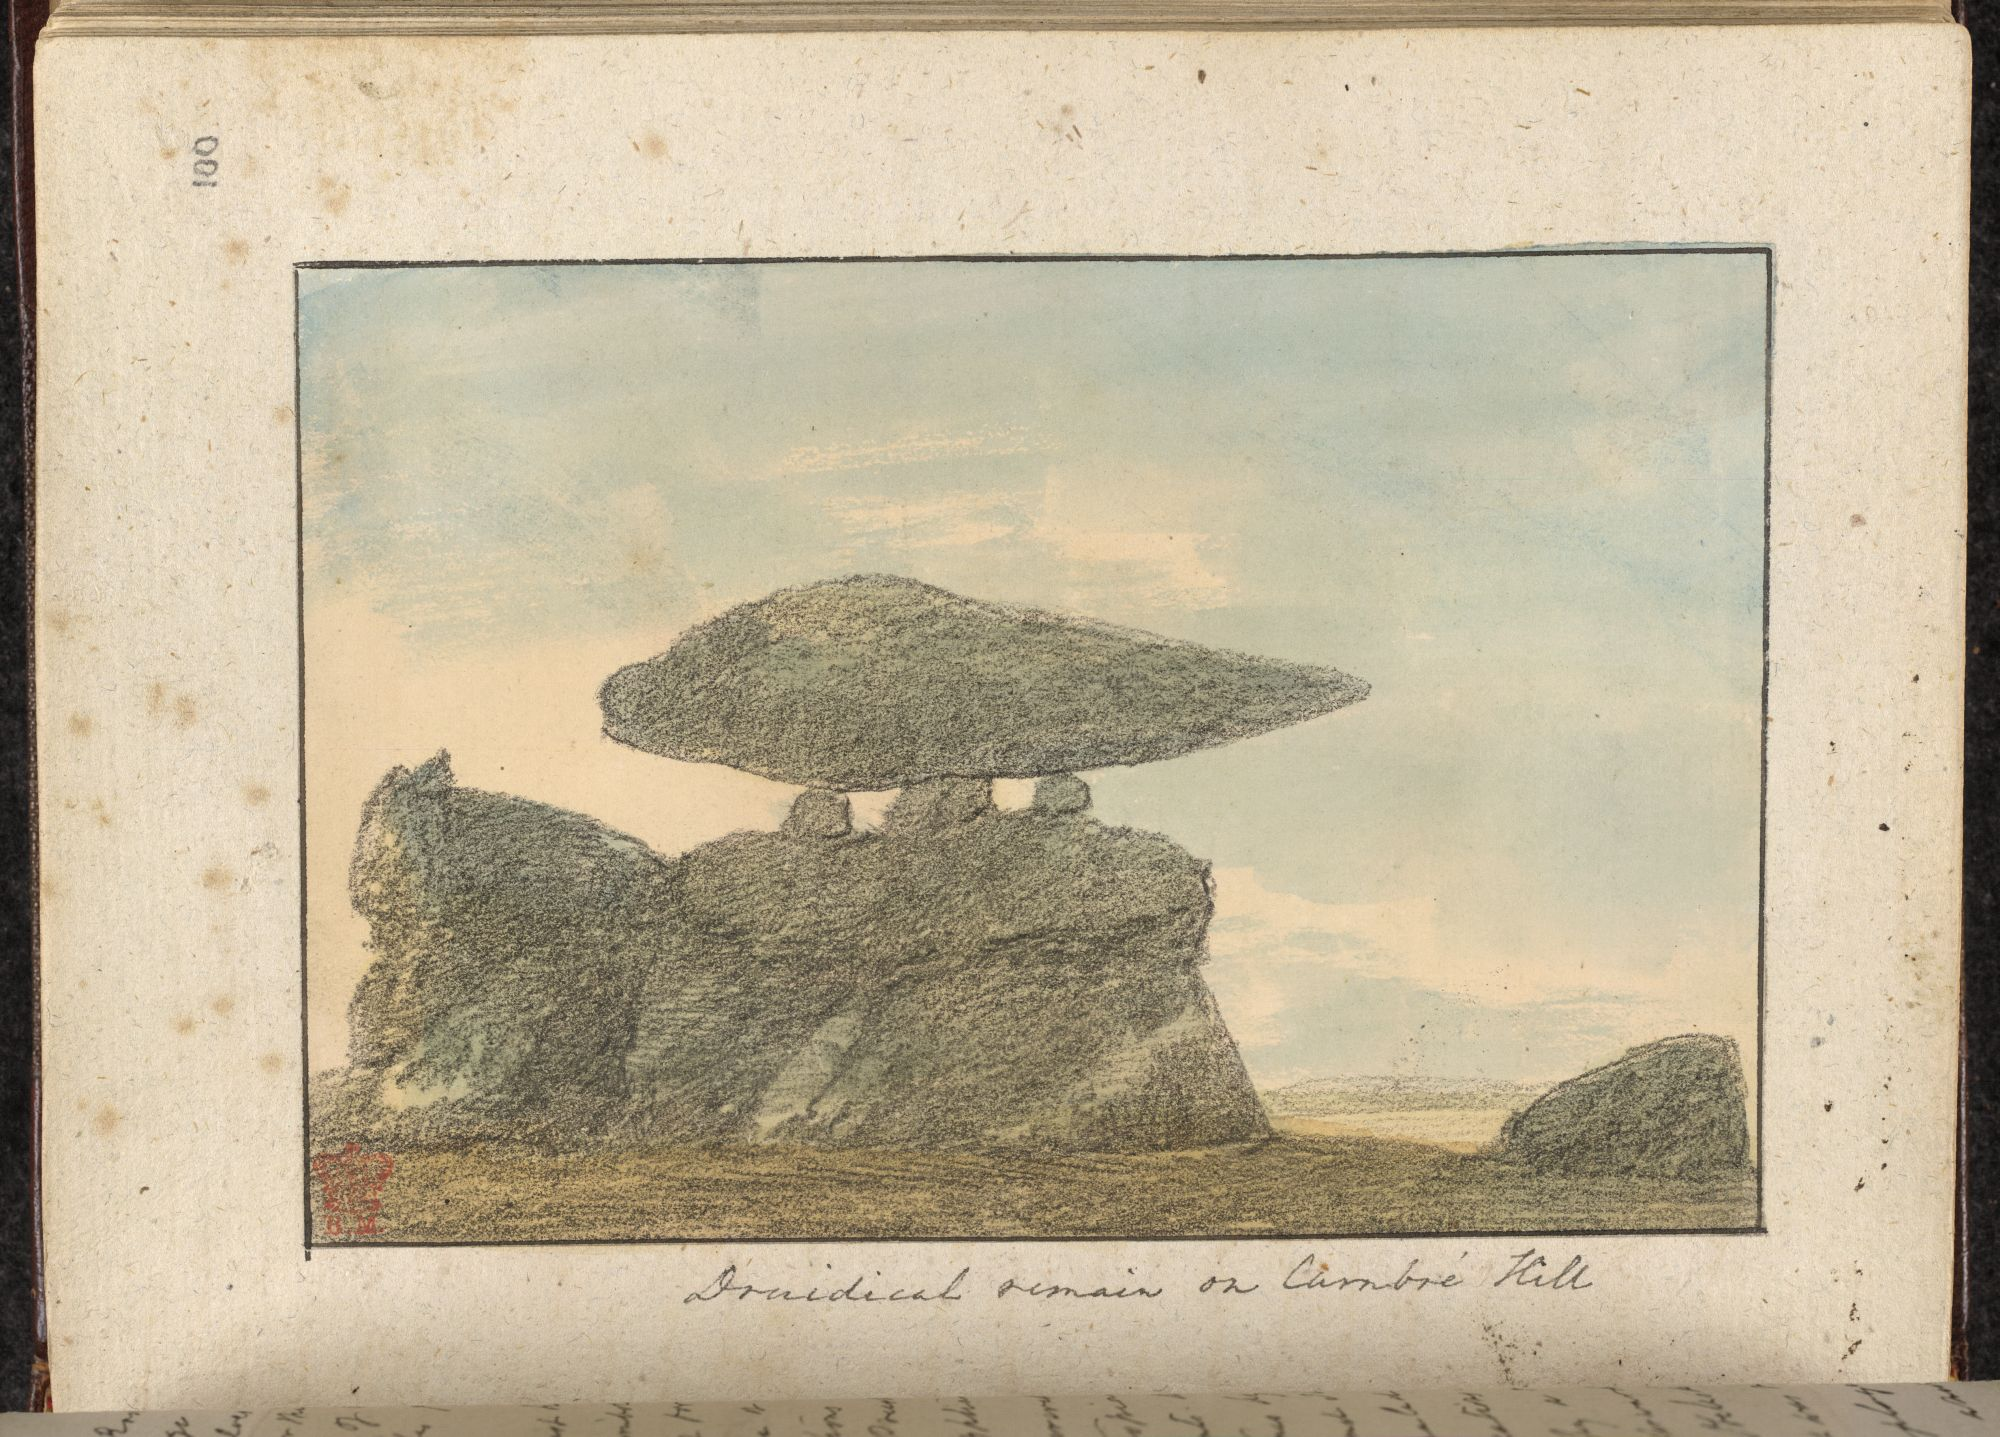 A view of druidical remains on Carn Brea Hill by Rev. John Skinner.